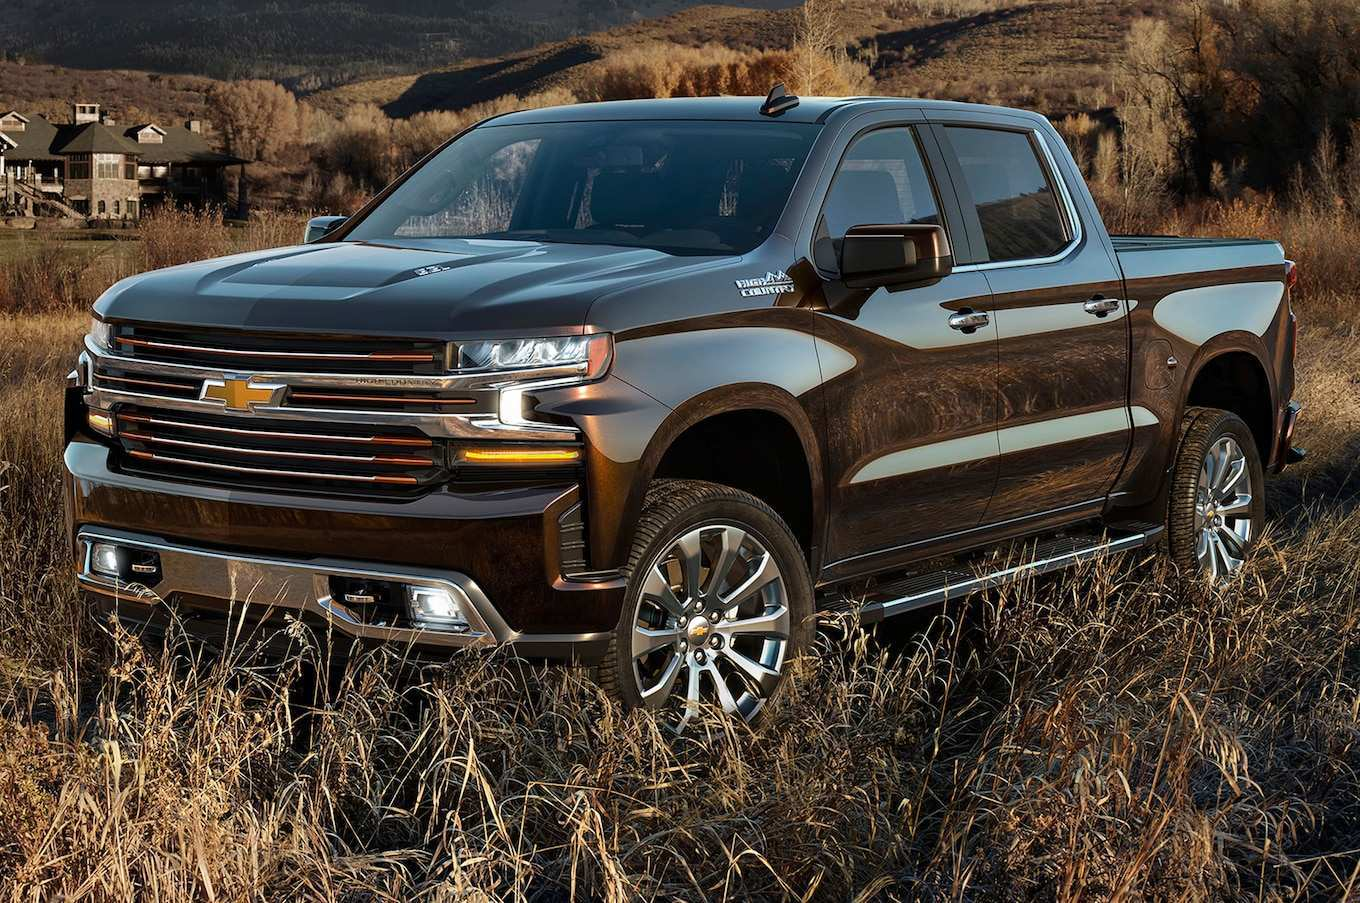 18 Concept of Best Gmc Vs Silverado 2019 Concept Redesign And Review Style for Best Gmc Vs Silverado 2019 Concept Redesign And Review